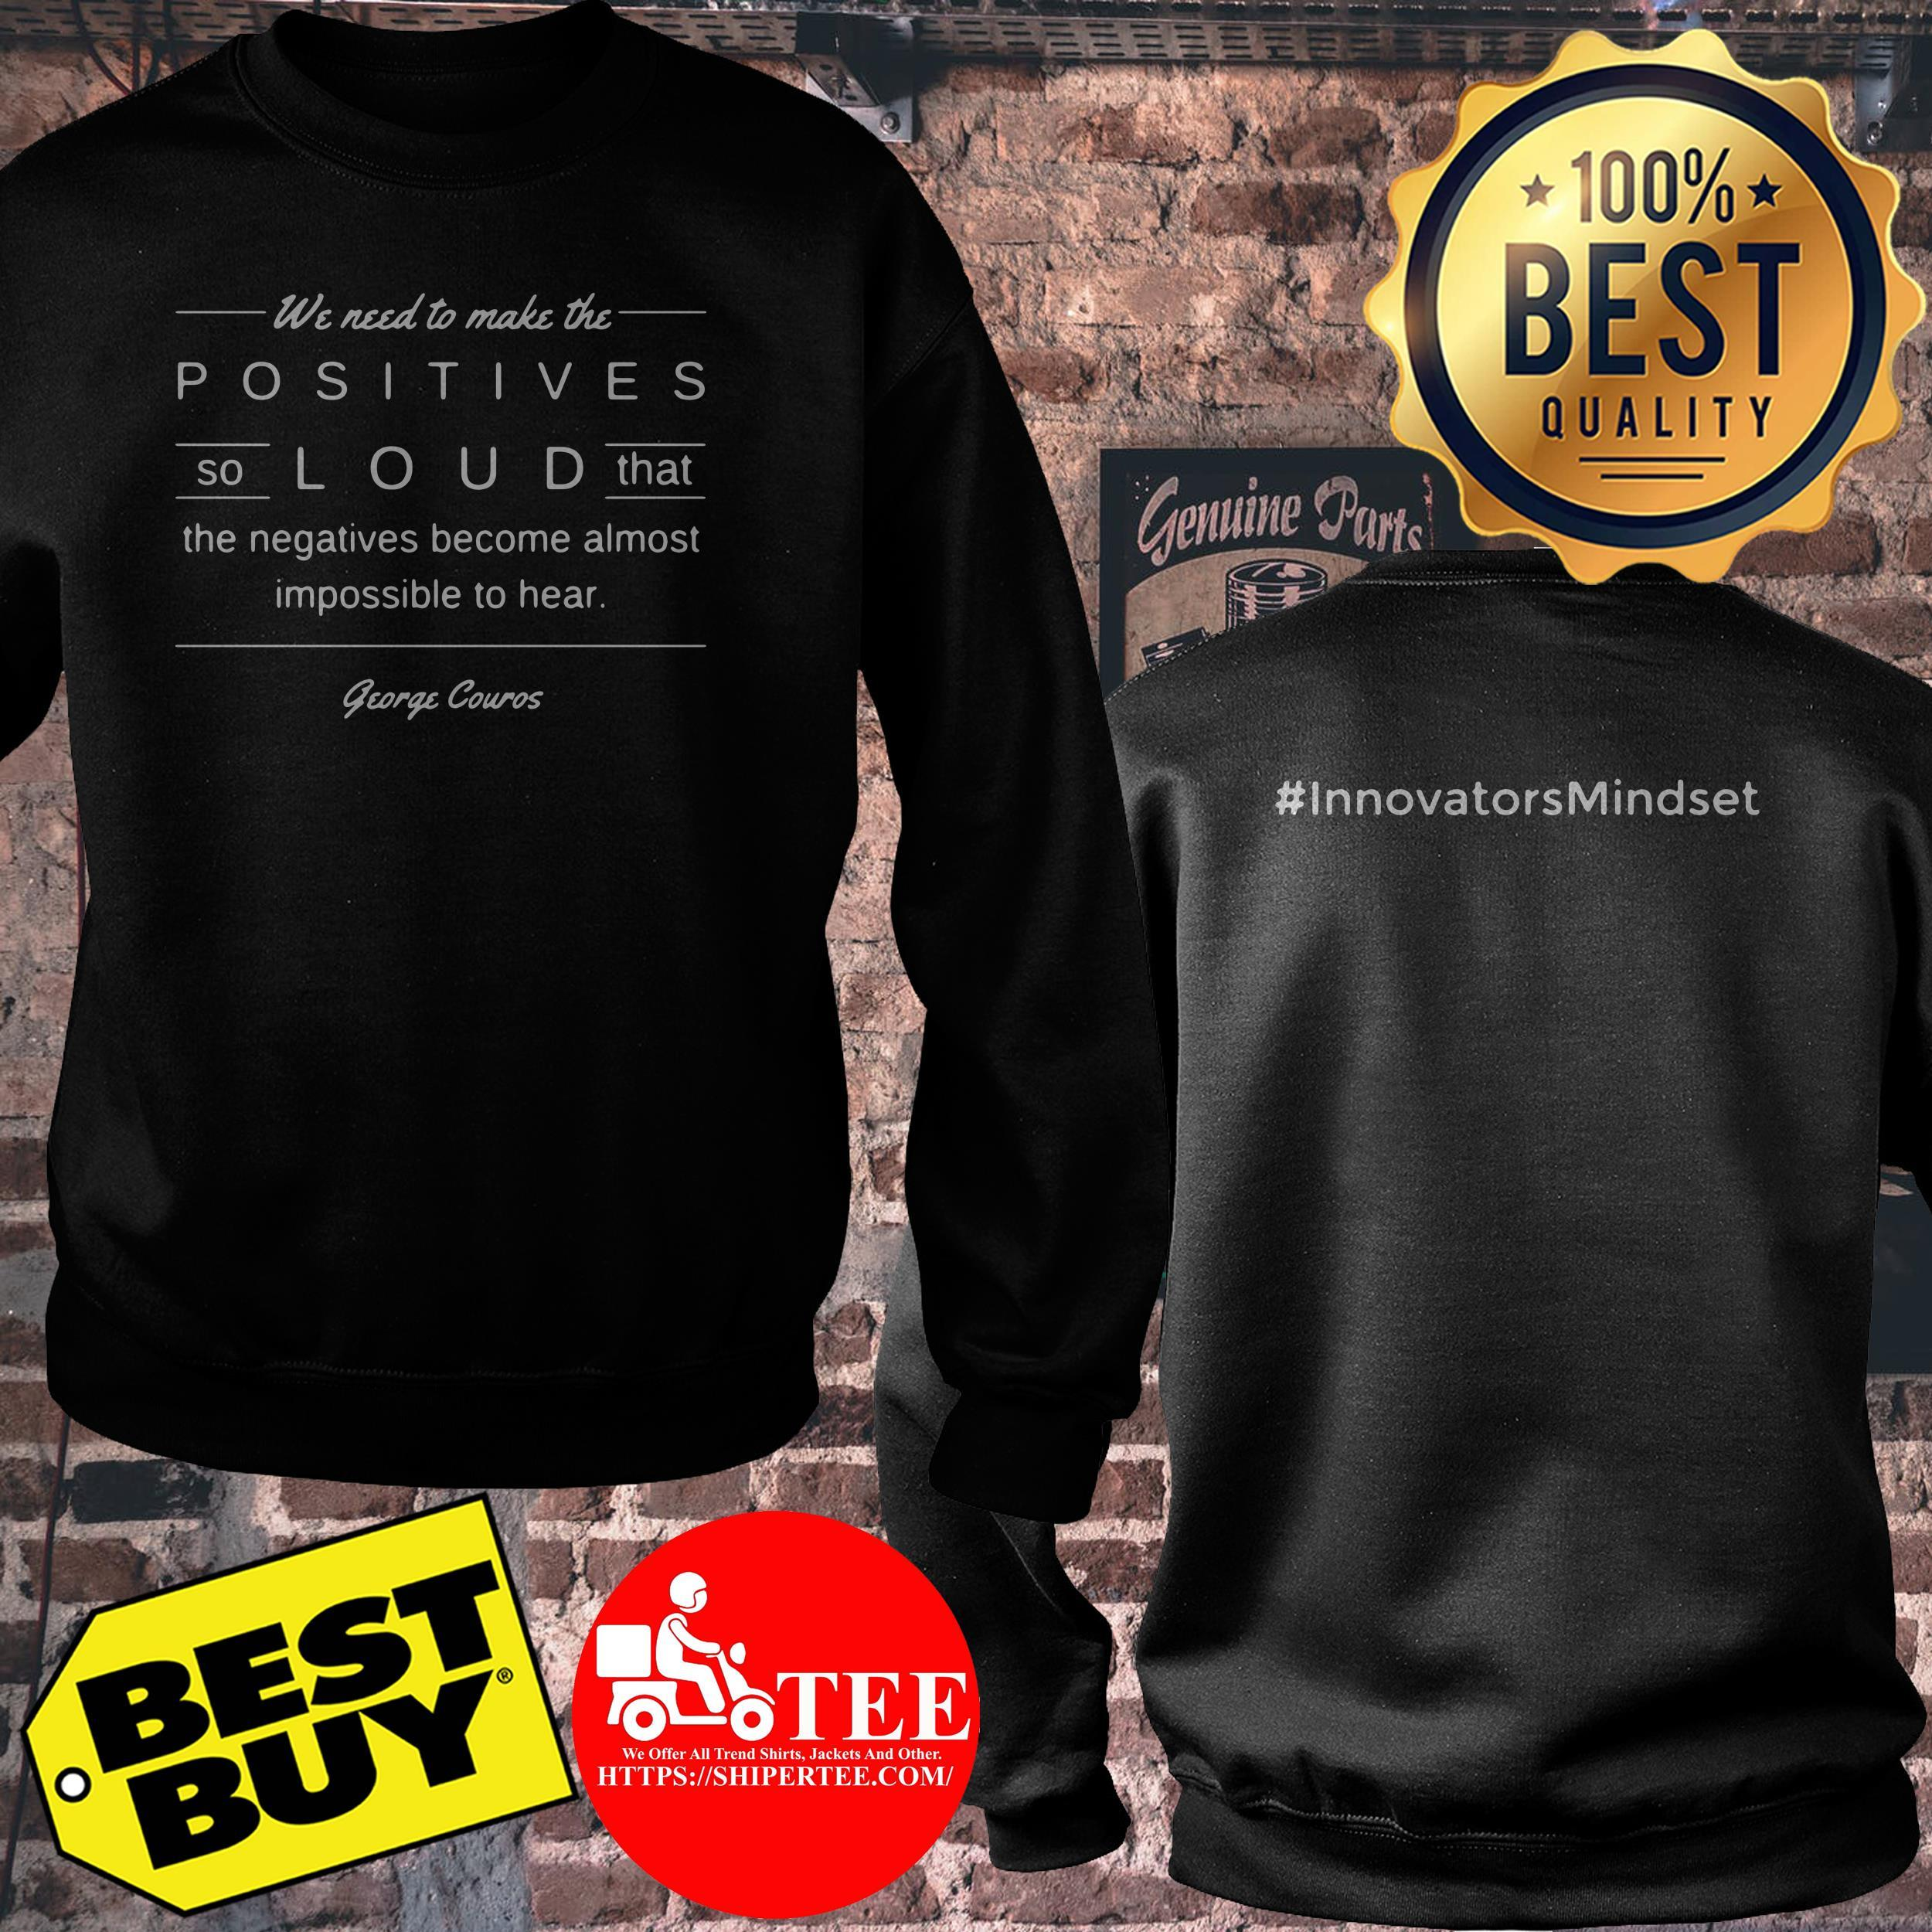 Make the Positives #InnovatorsMindset sweatshirt